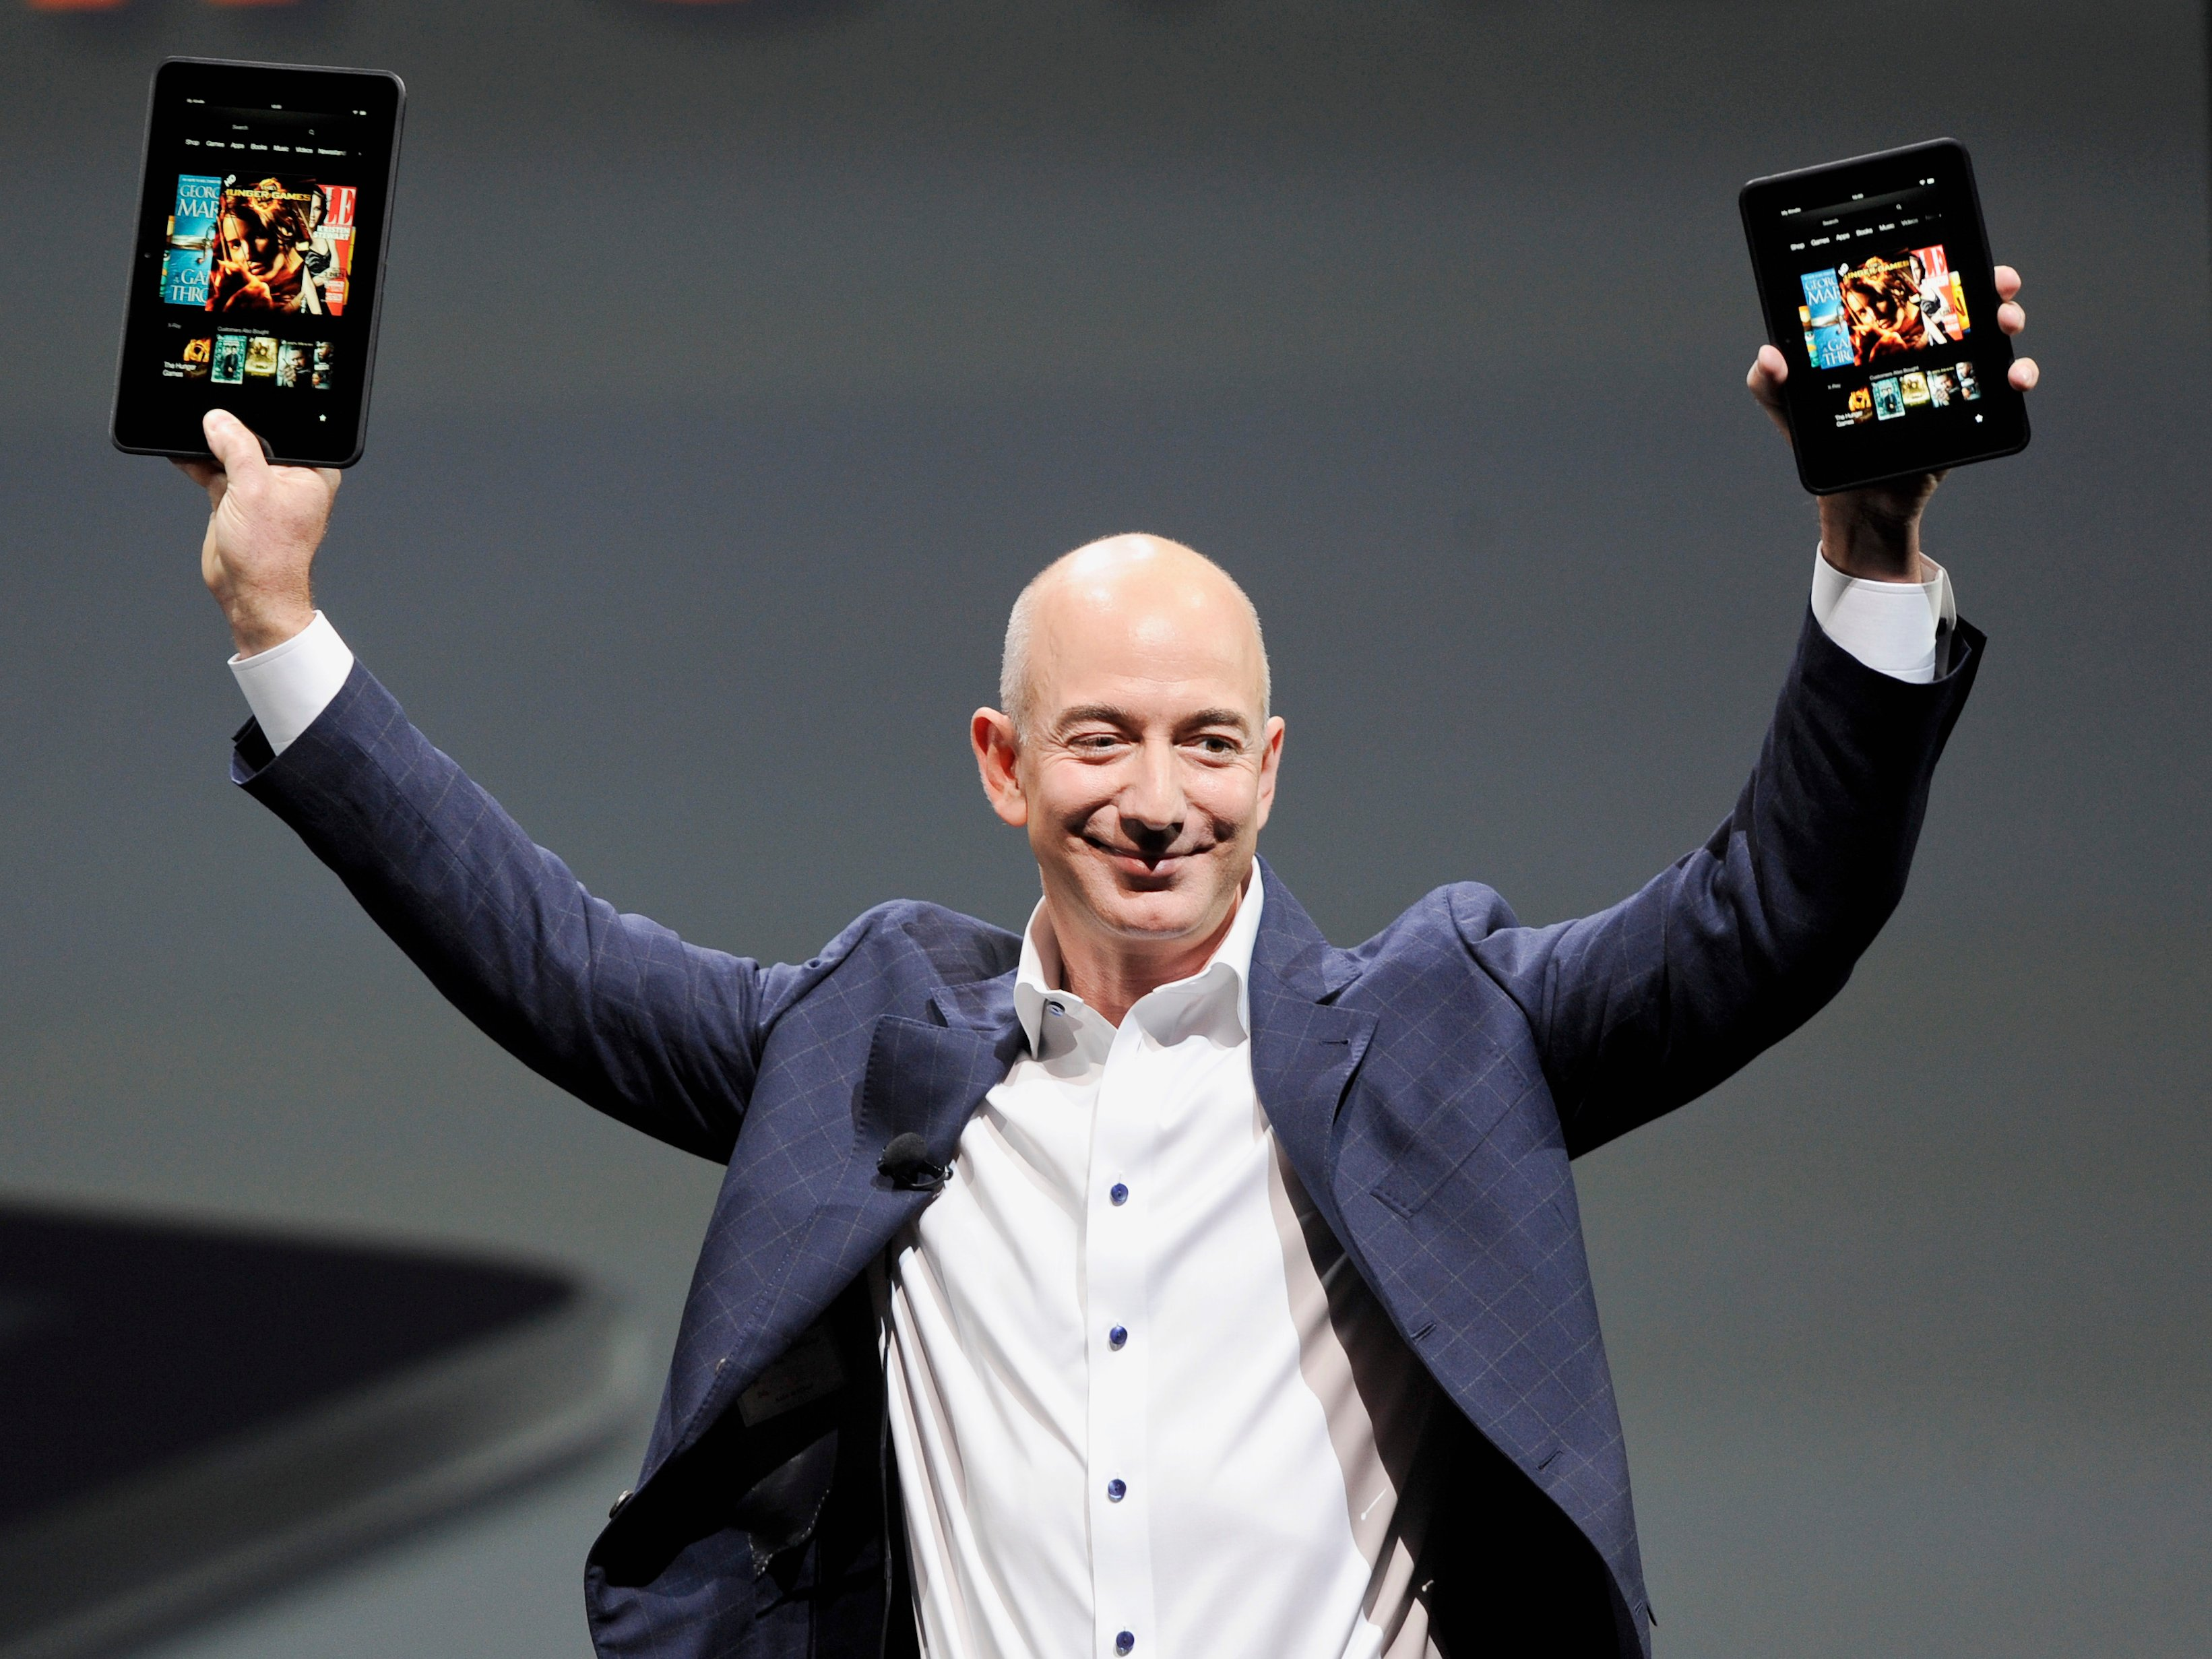 Jeff Bezos (Amazon) devient l'homme le plus riche du monde devant Bill Gates